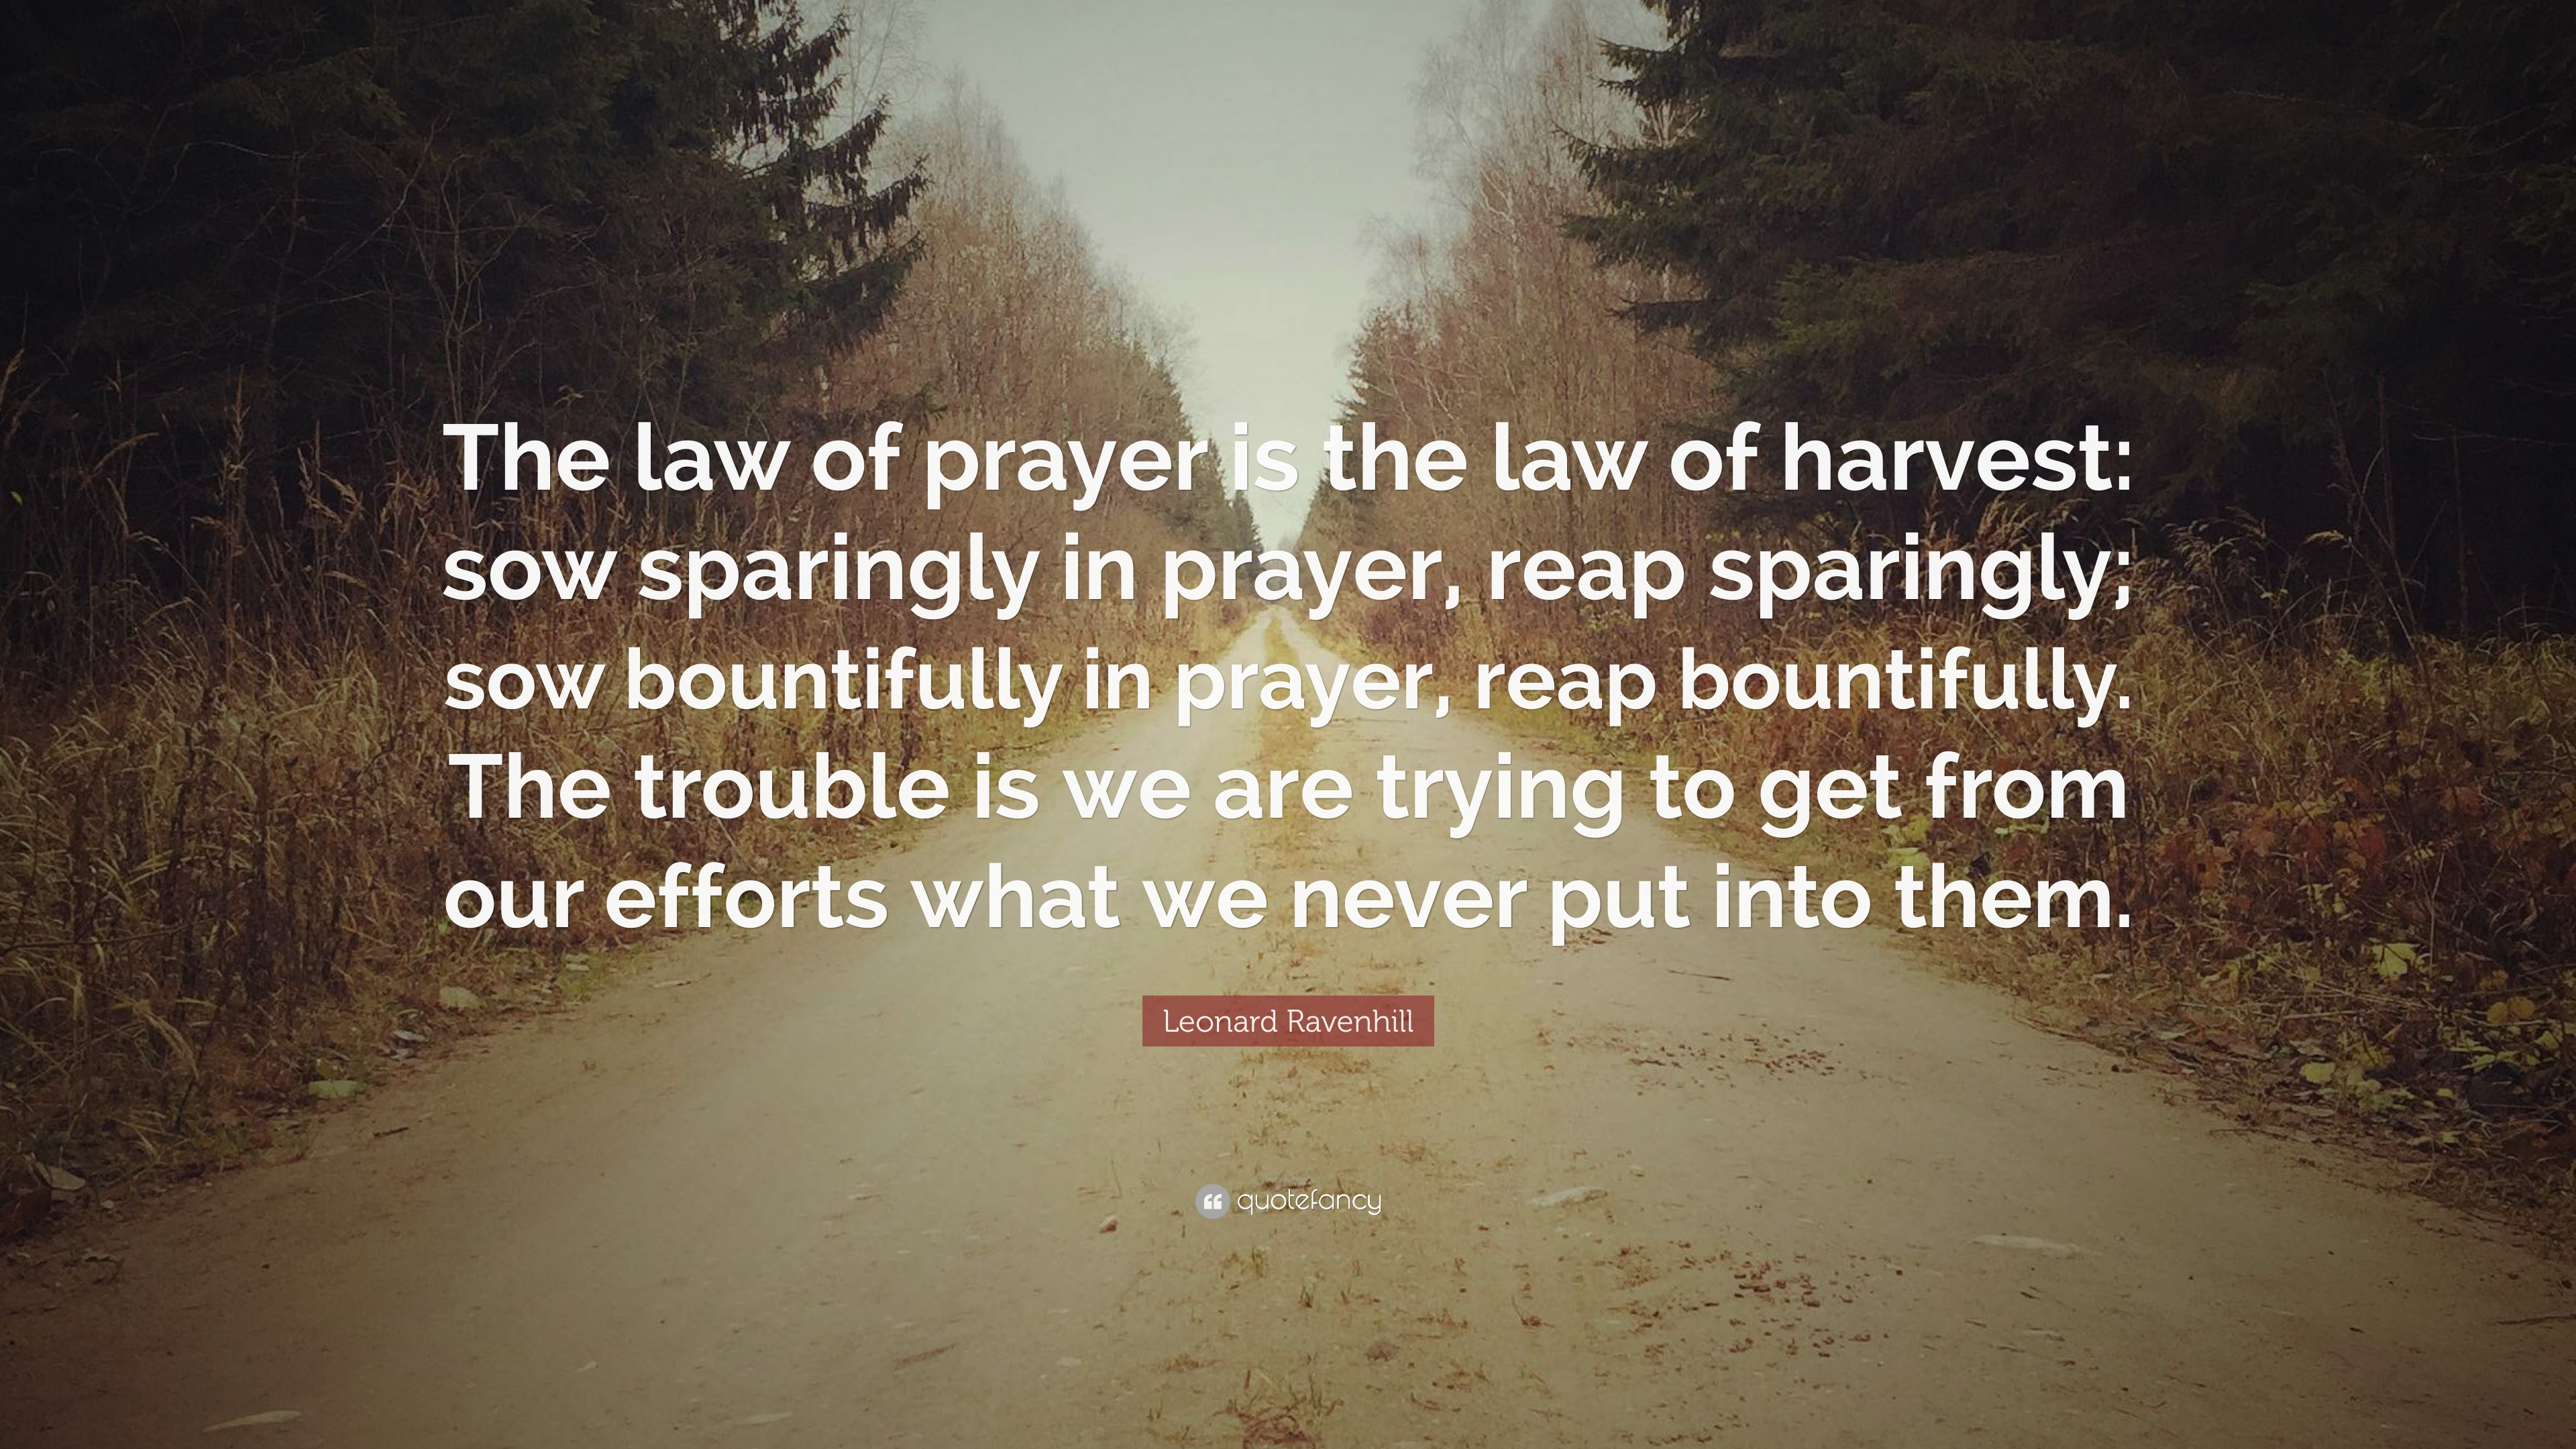 only one life leonard ravenhill quote